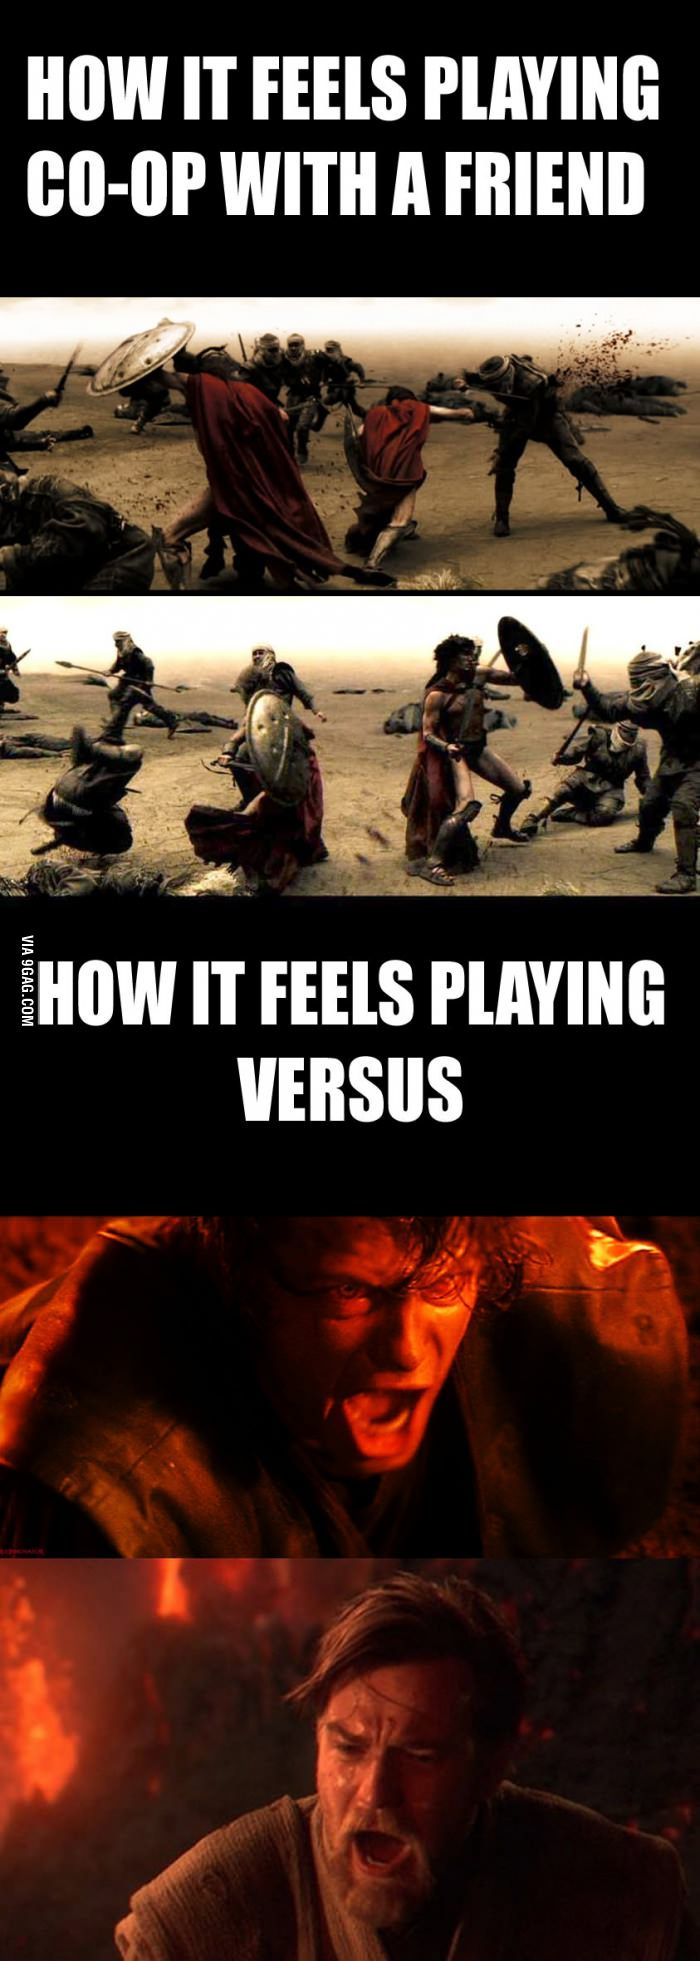 How friendships end in gaming. Many thousands of friendships have been killed by Micromachines alone! :)